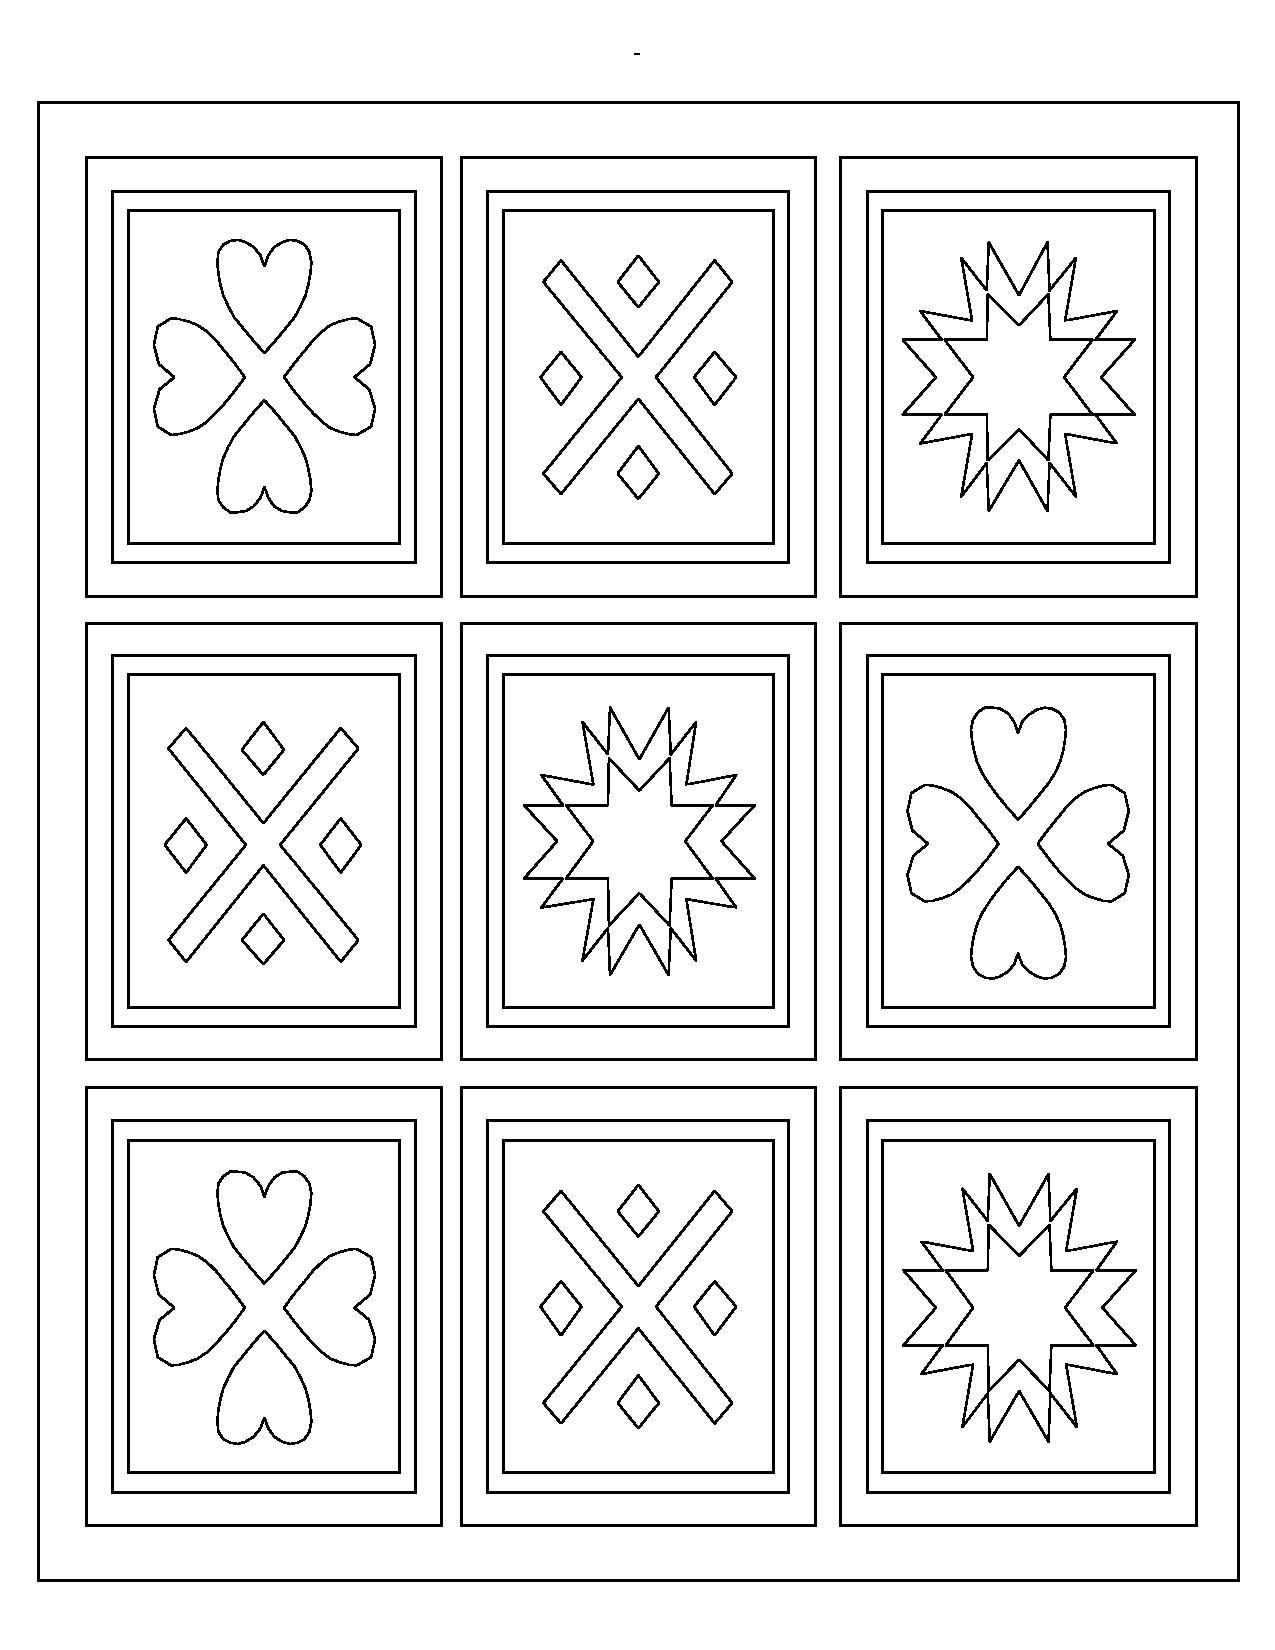 quilt coloring pages preschool Google Search A little Class